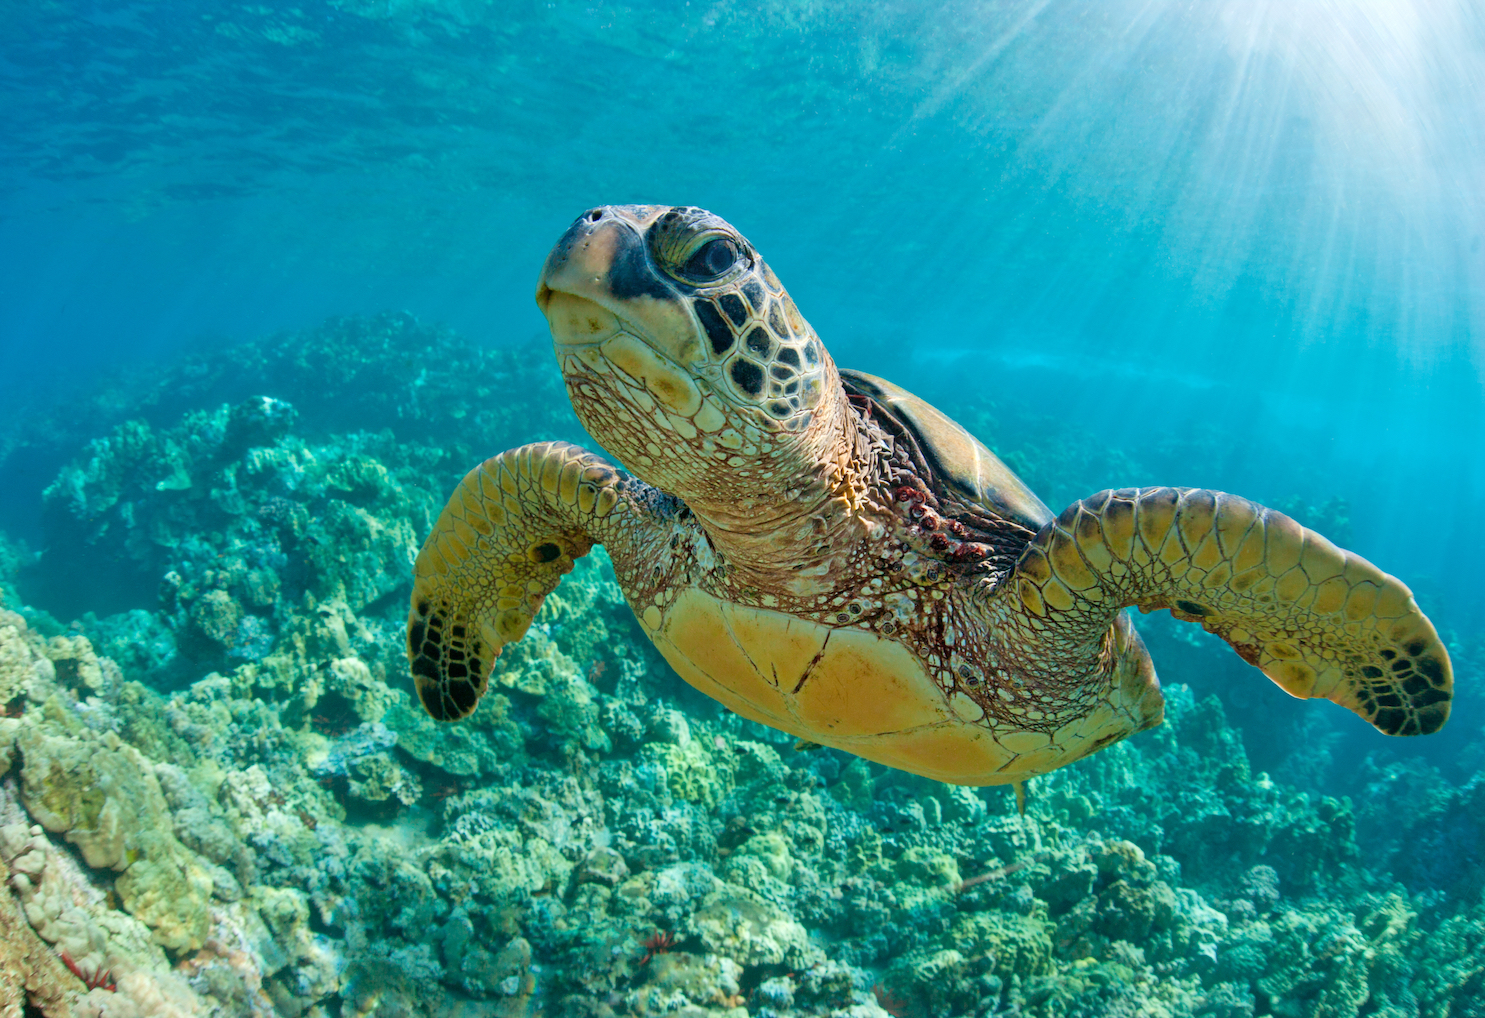 According to new research, decades of conservation efforts to protect sea turtles have paid off as their numbers are steadily growing.